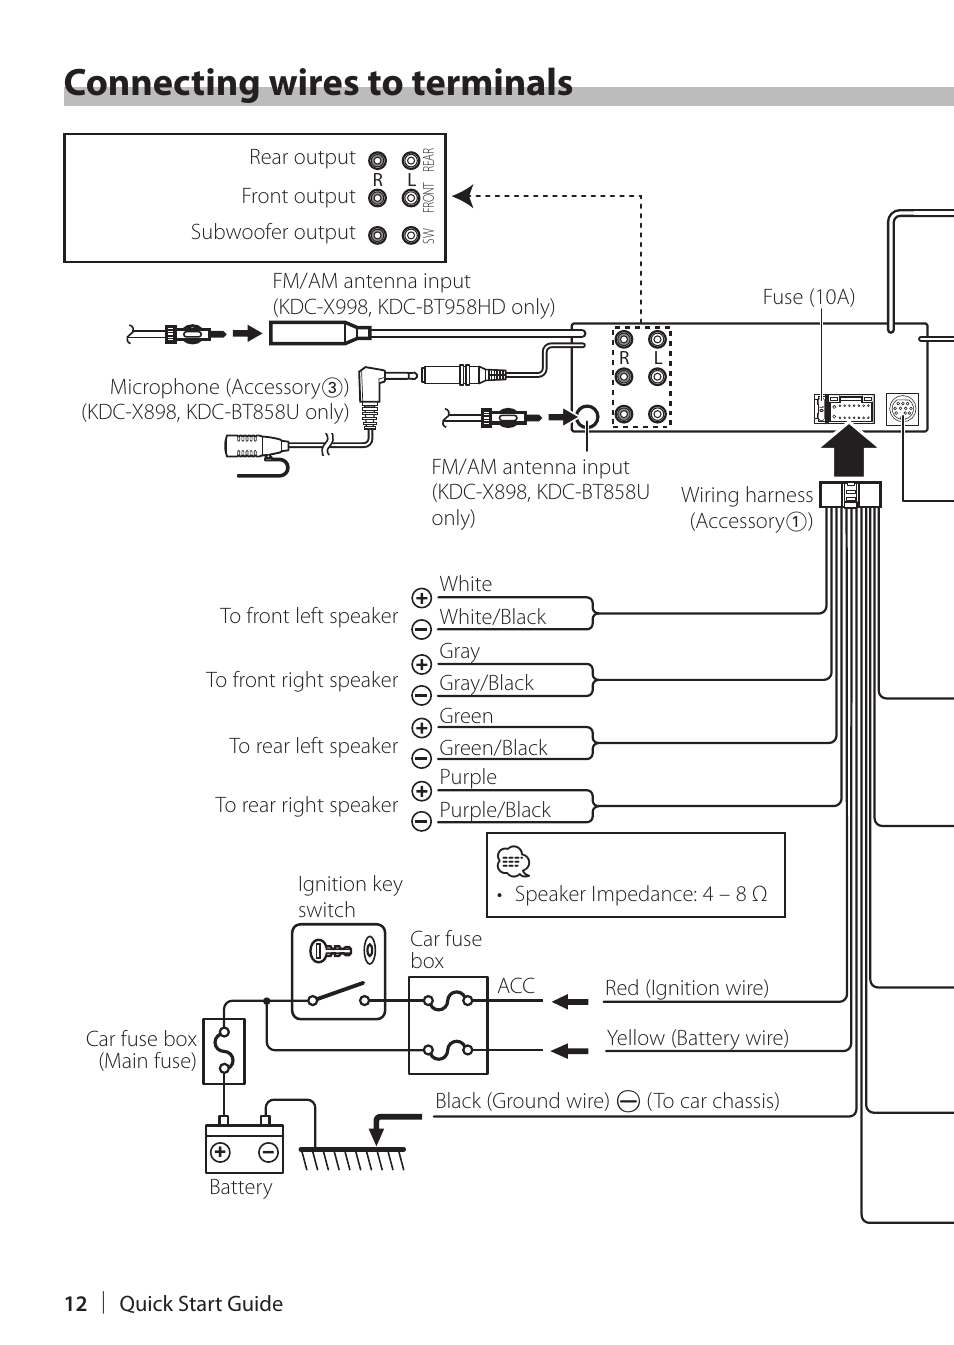 kenwood kdc bt555u wiring diagram model connecting wires to terminals | kenwood kdc-x898 user ...